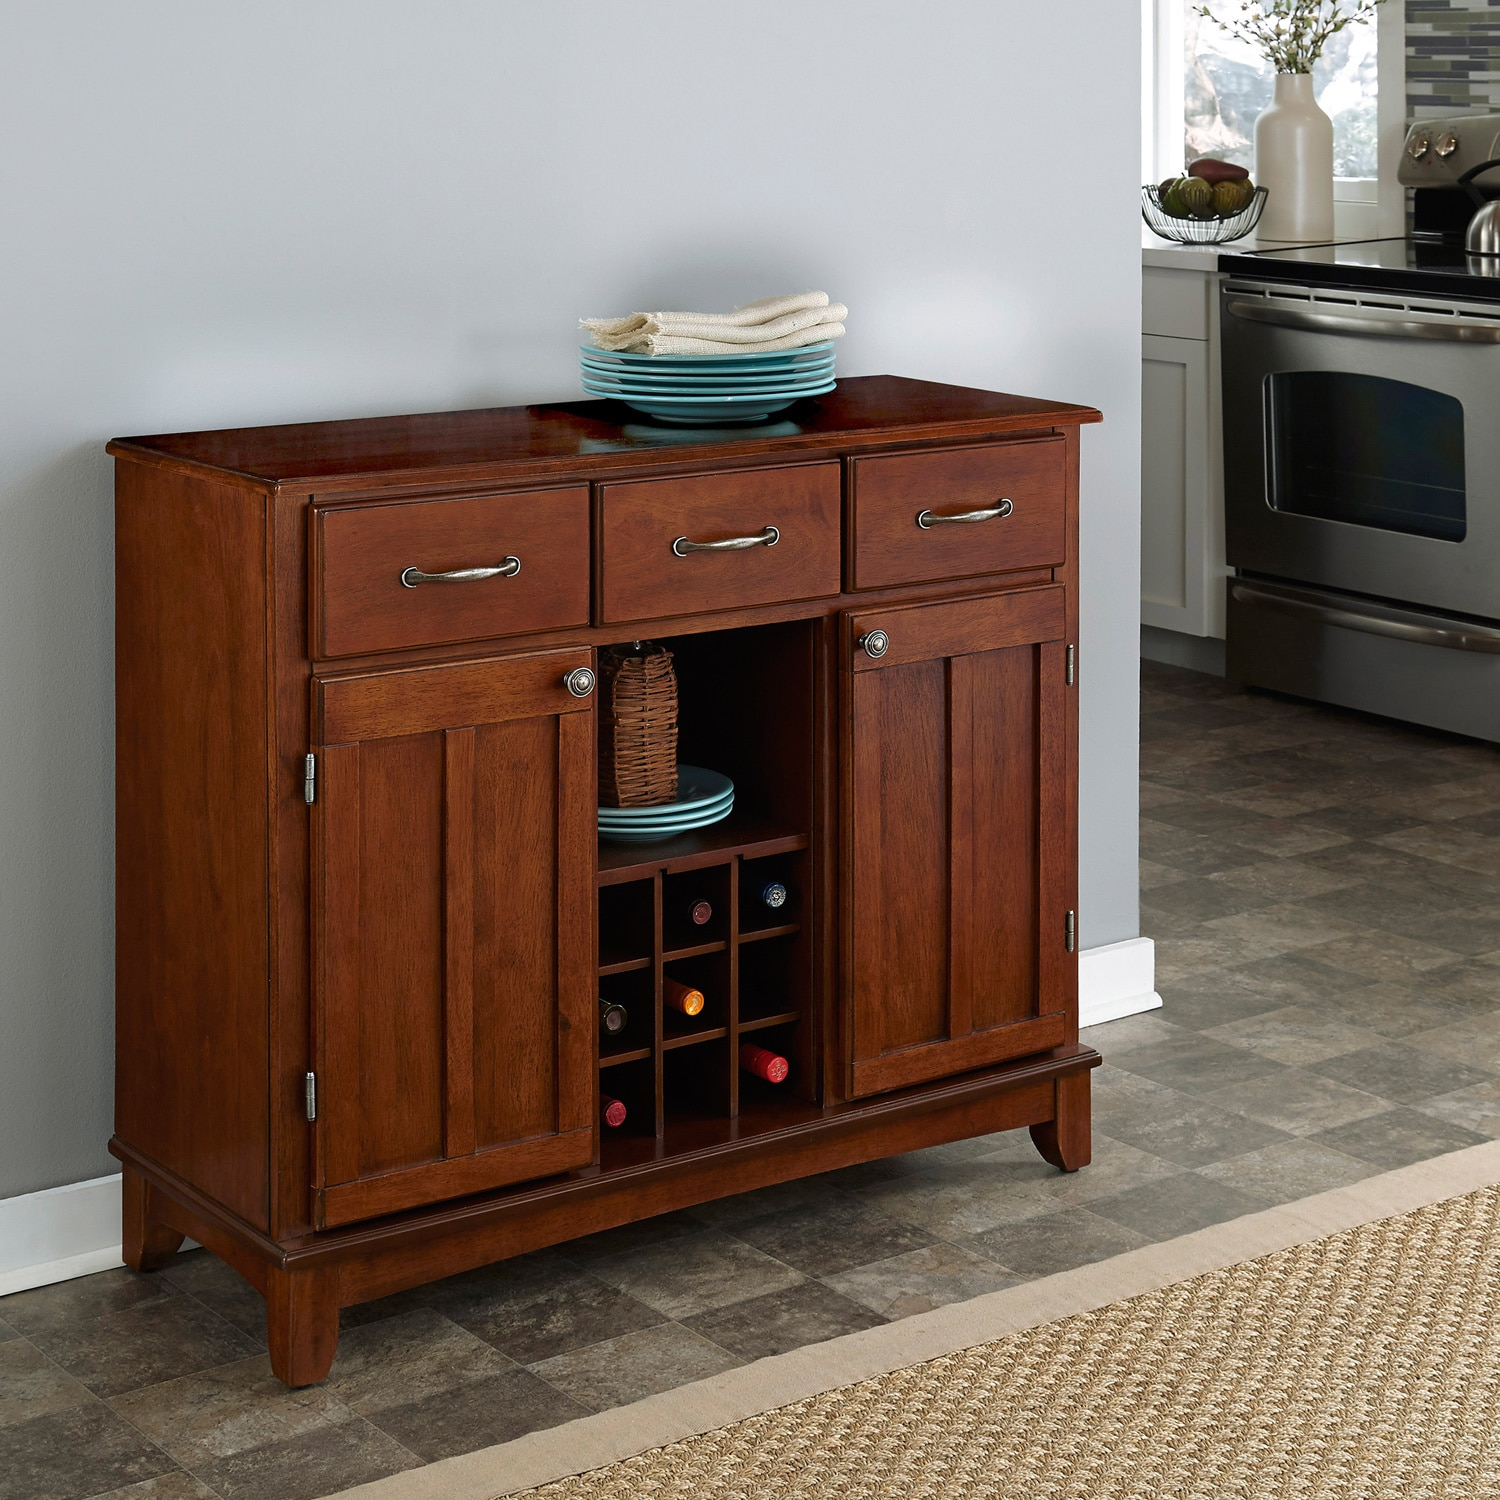 Medium Cherry Buffet with Wood Top by Home Styles (Buffet...